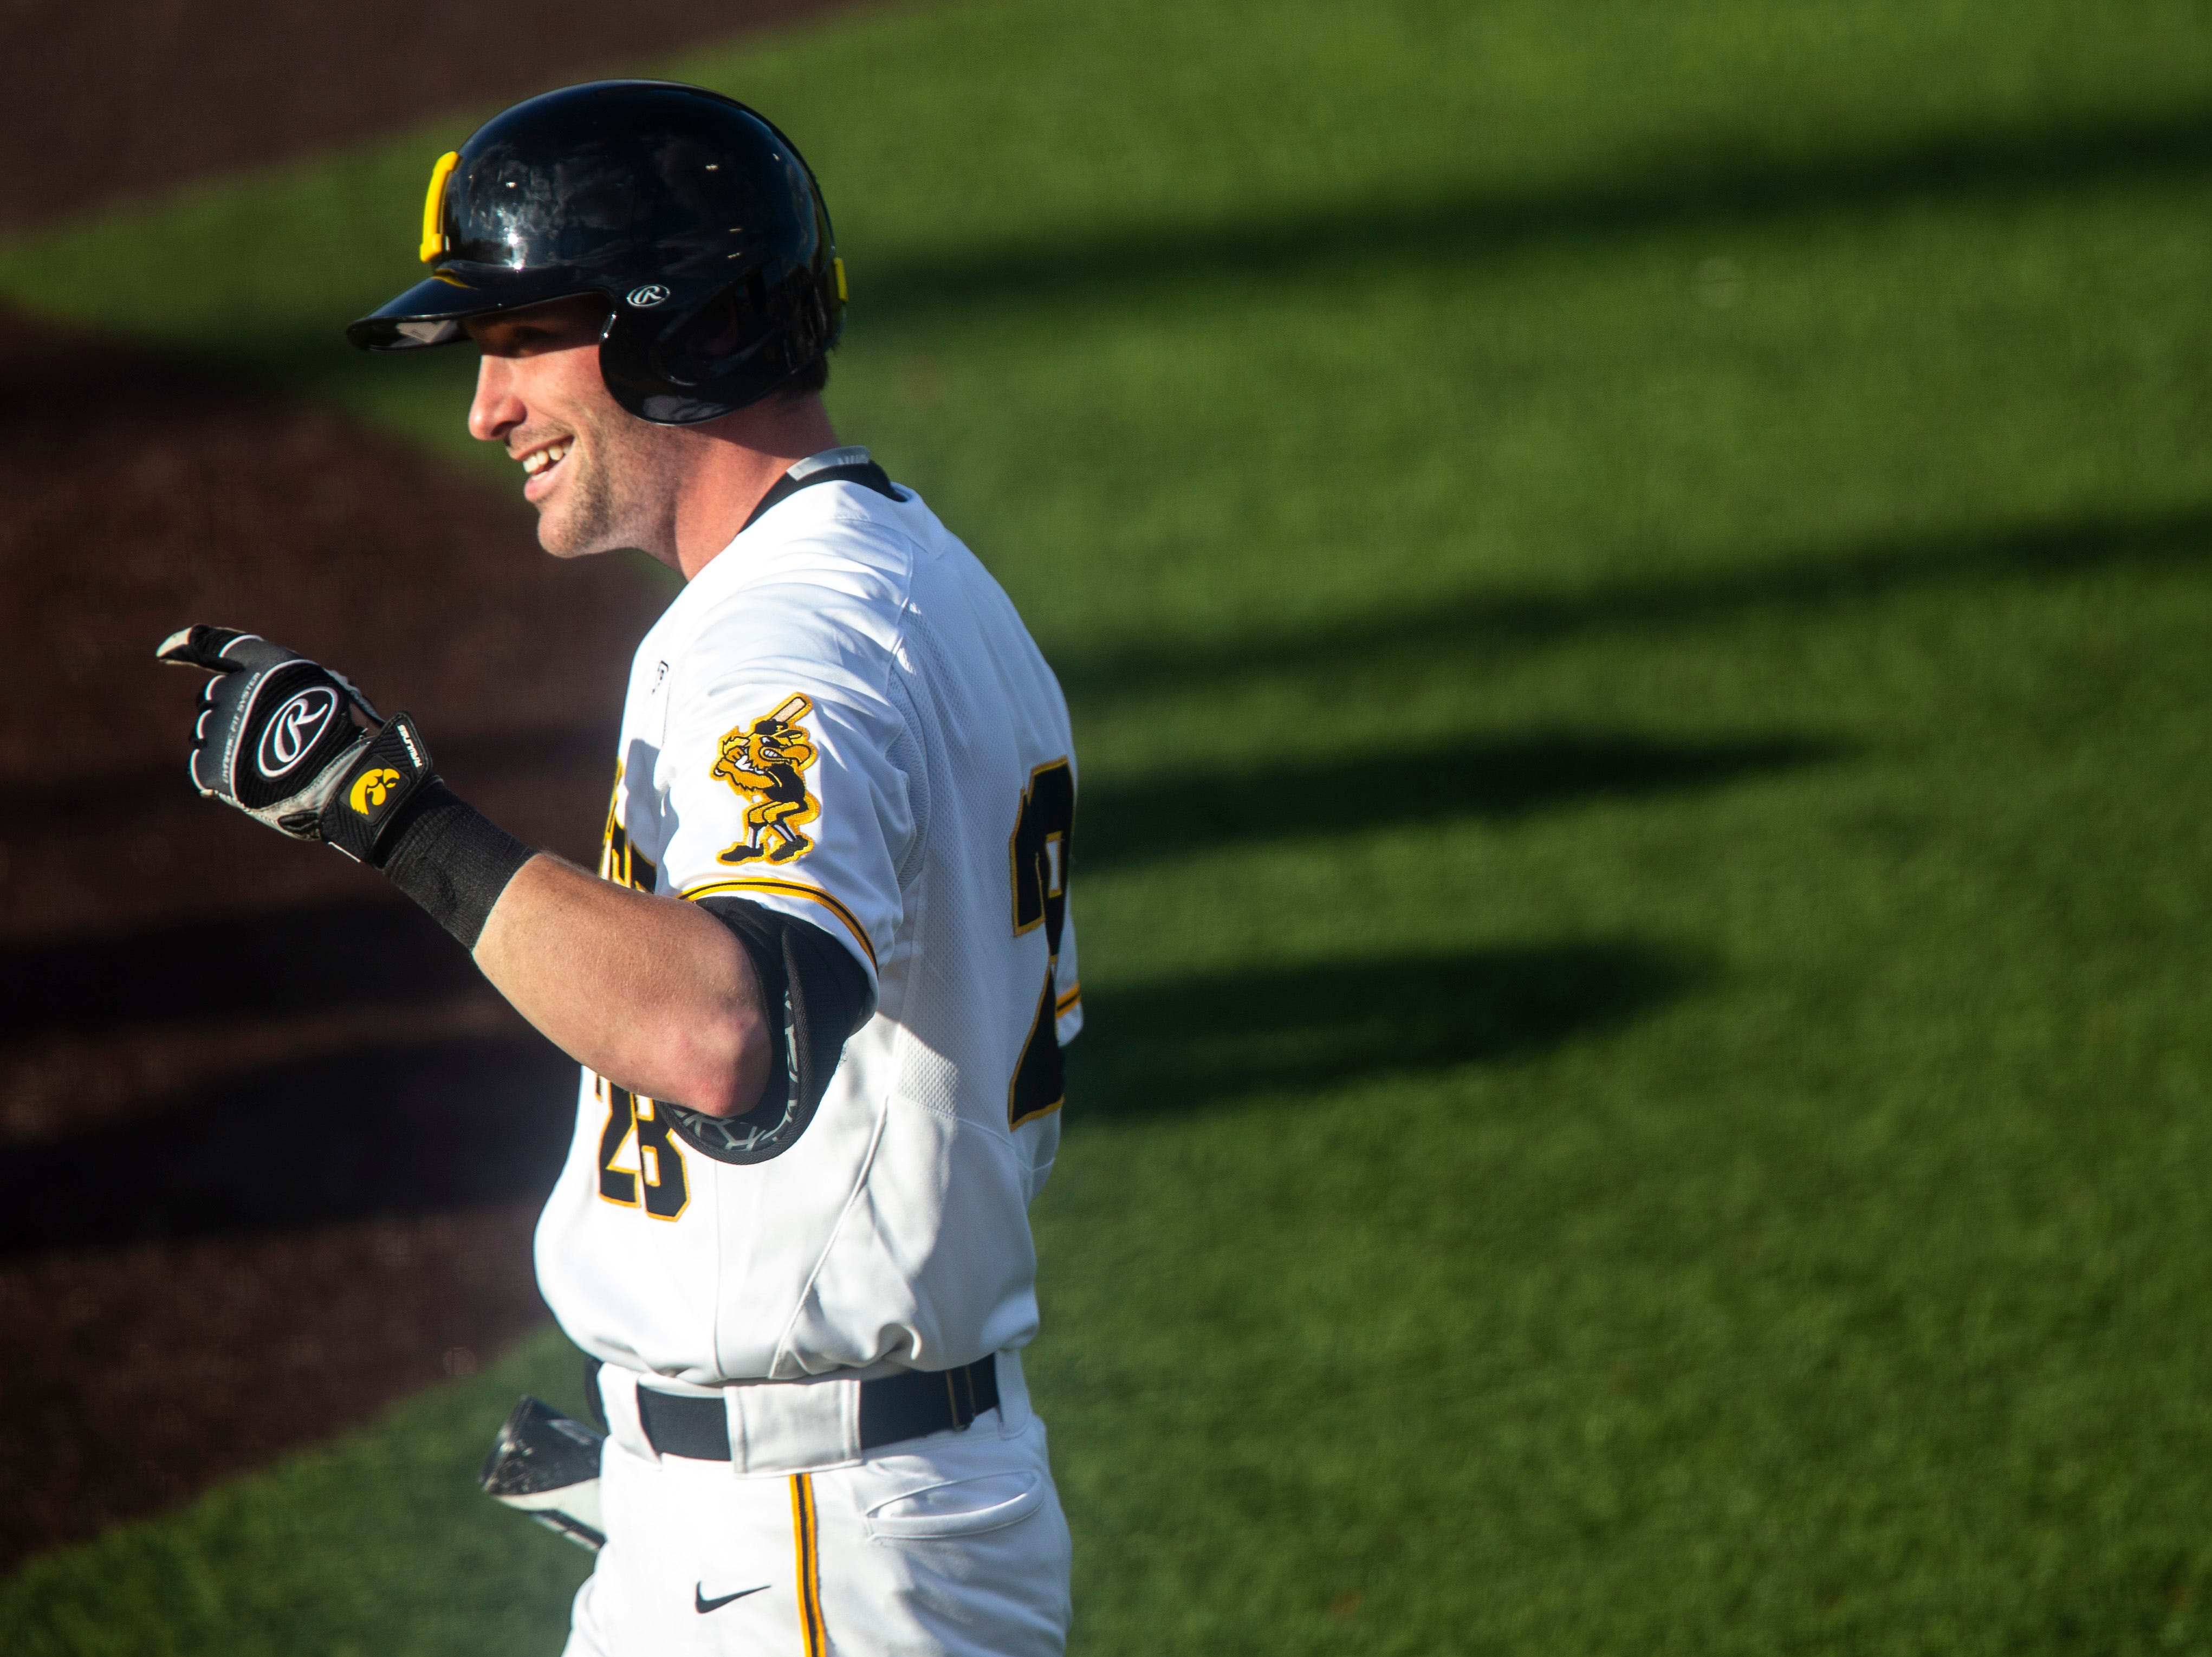 Iowa's Chris Whelan (28) smiles while walking up to the plate during a NCAA Big Ten Conference baseball game, Friday, May 10, 2019, at Duane Banks Field on the University of Iowa campus in Iowa City, Iowa.